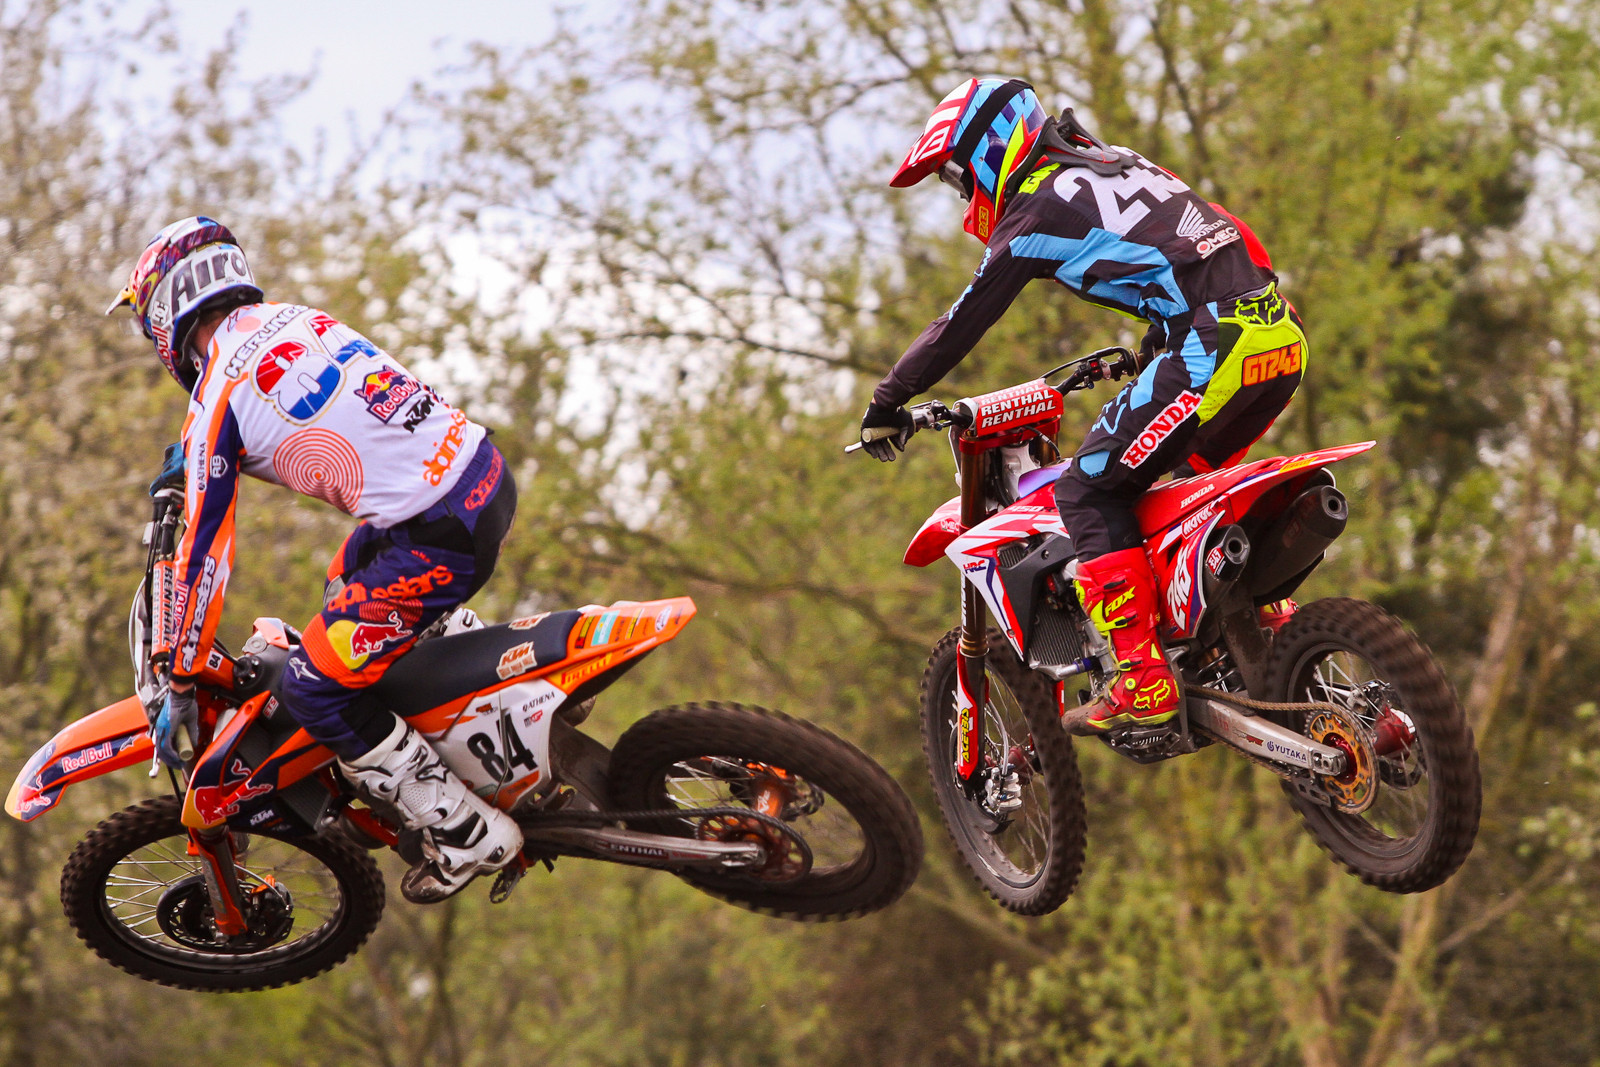 Jeffrey Herlings / Tim Gajser - Photo Blast: 2017 MXGP of Valkenswaard - Motocross Pictures - Vital MX